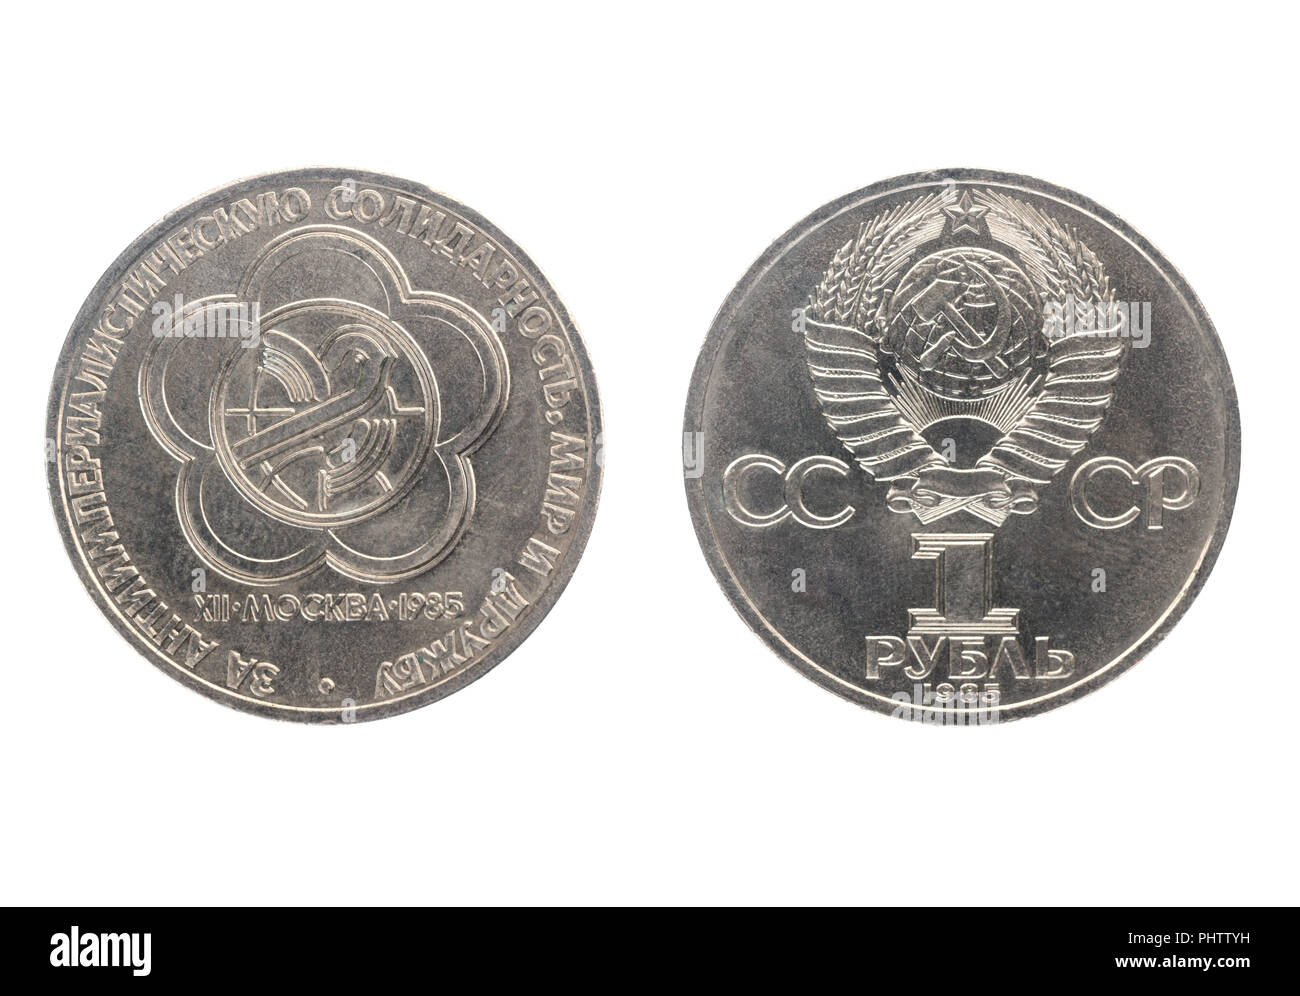 Set of commemorative the USSR coin in 1985, the nominal value of 1 ruble.For anti-imperialist solidarity, peace and friendship. XII World Festival of  - Stock Image